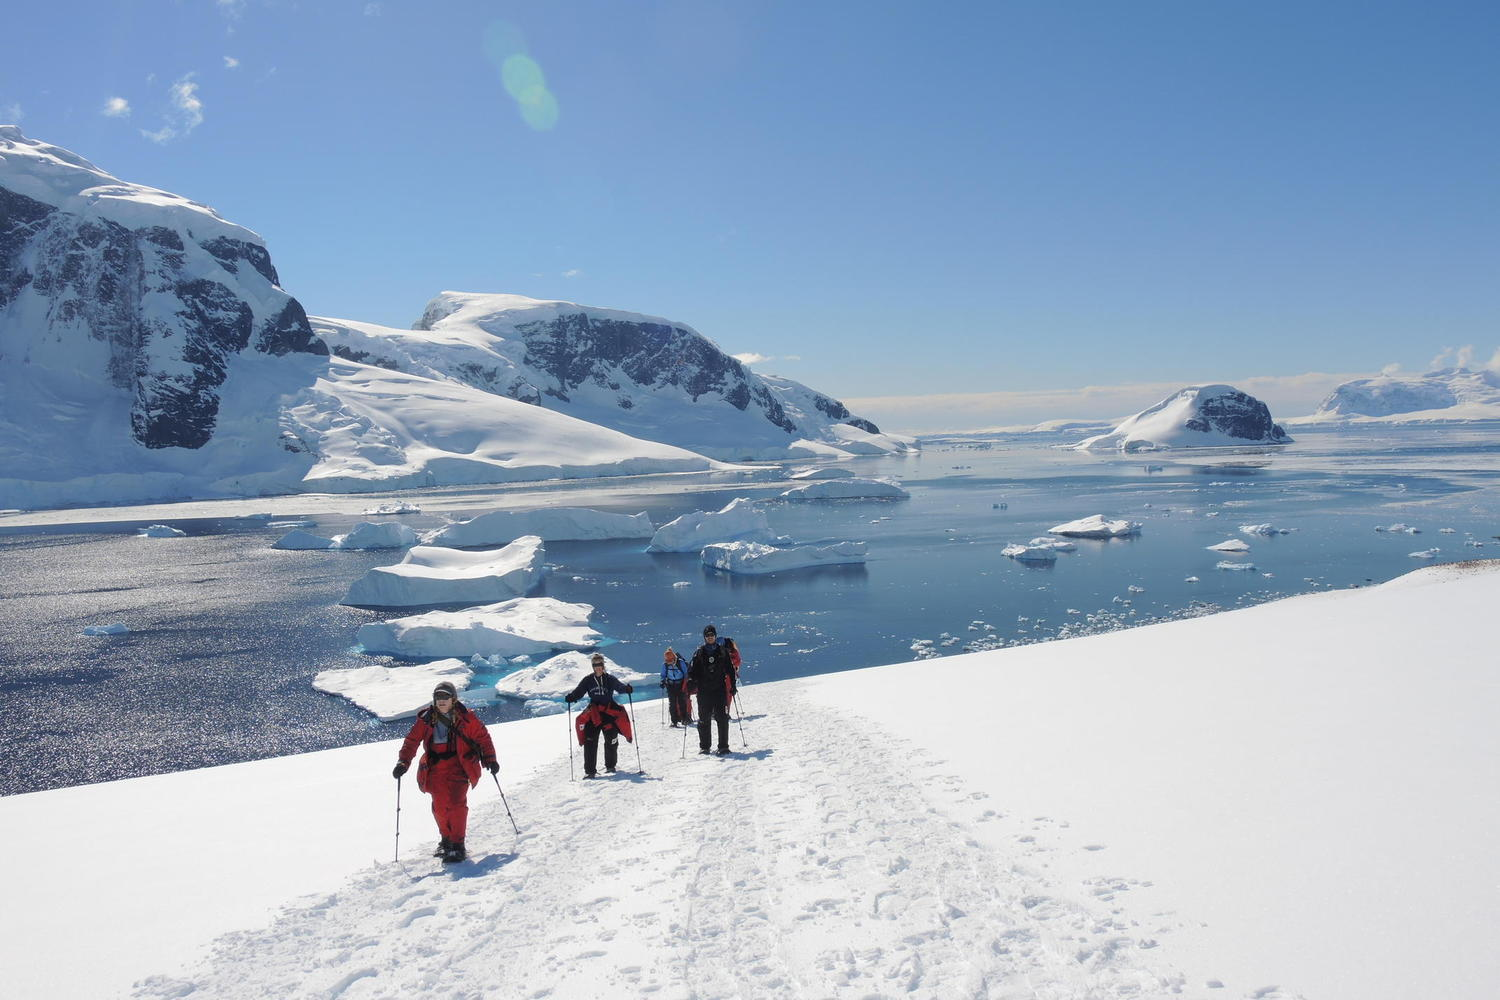 Snowshoeing up to the point on Danco Island on a sunny day